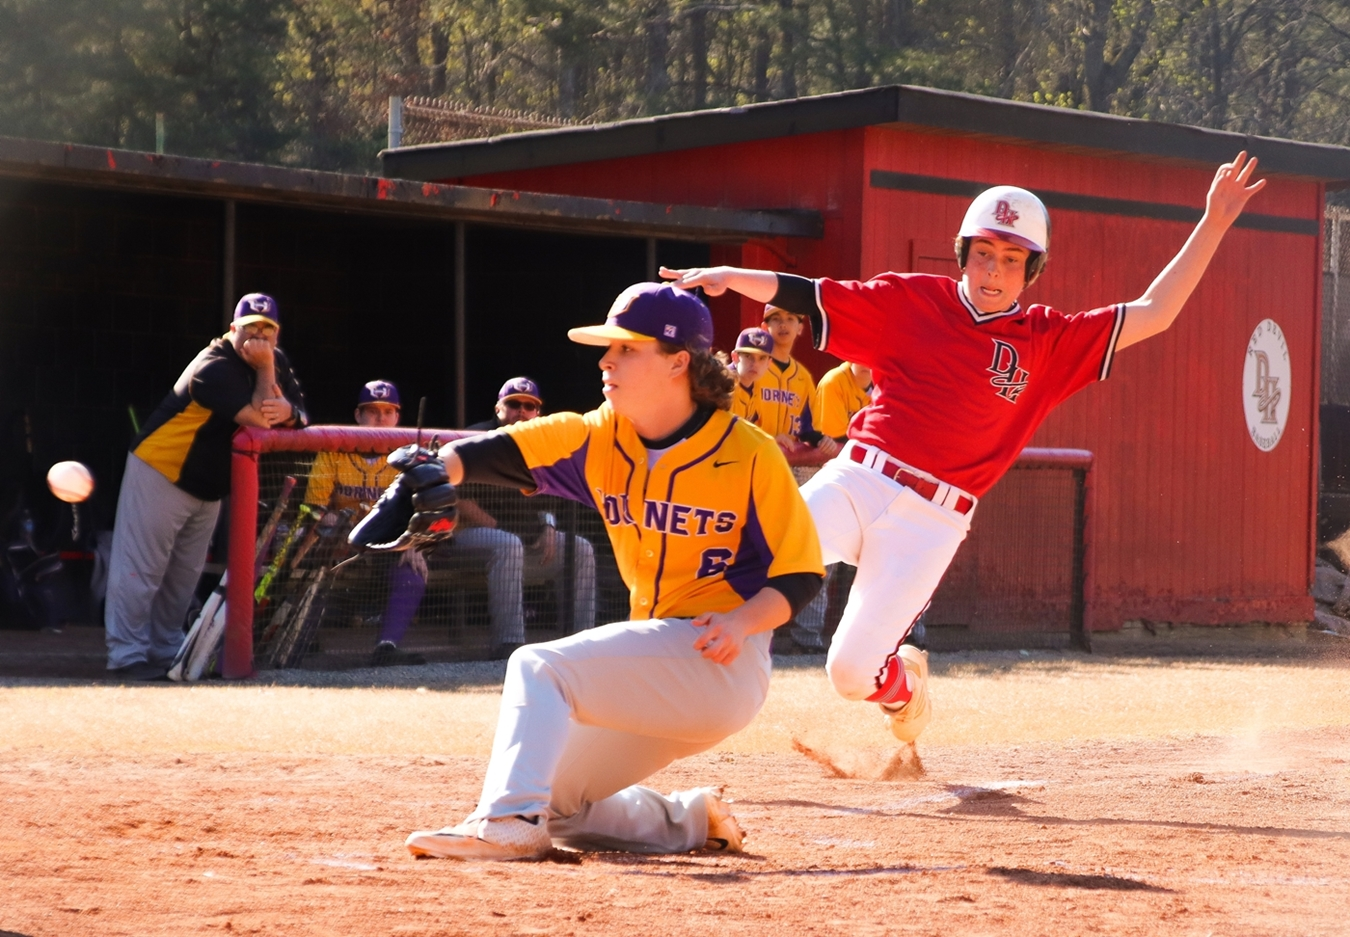 Druid Hills' Daivd McQuaig (right) slides in safe at home ahead of the tag by Hampton pitcher Logan Seehafer. McQuaig took advantage of a wild pitch to score from third on the play. (Photo by Mark Brock)